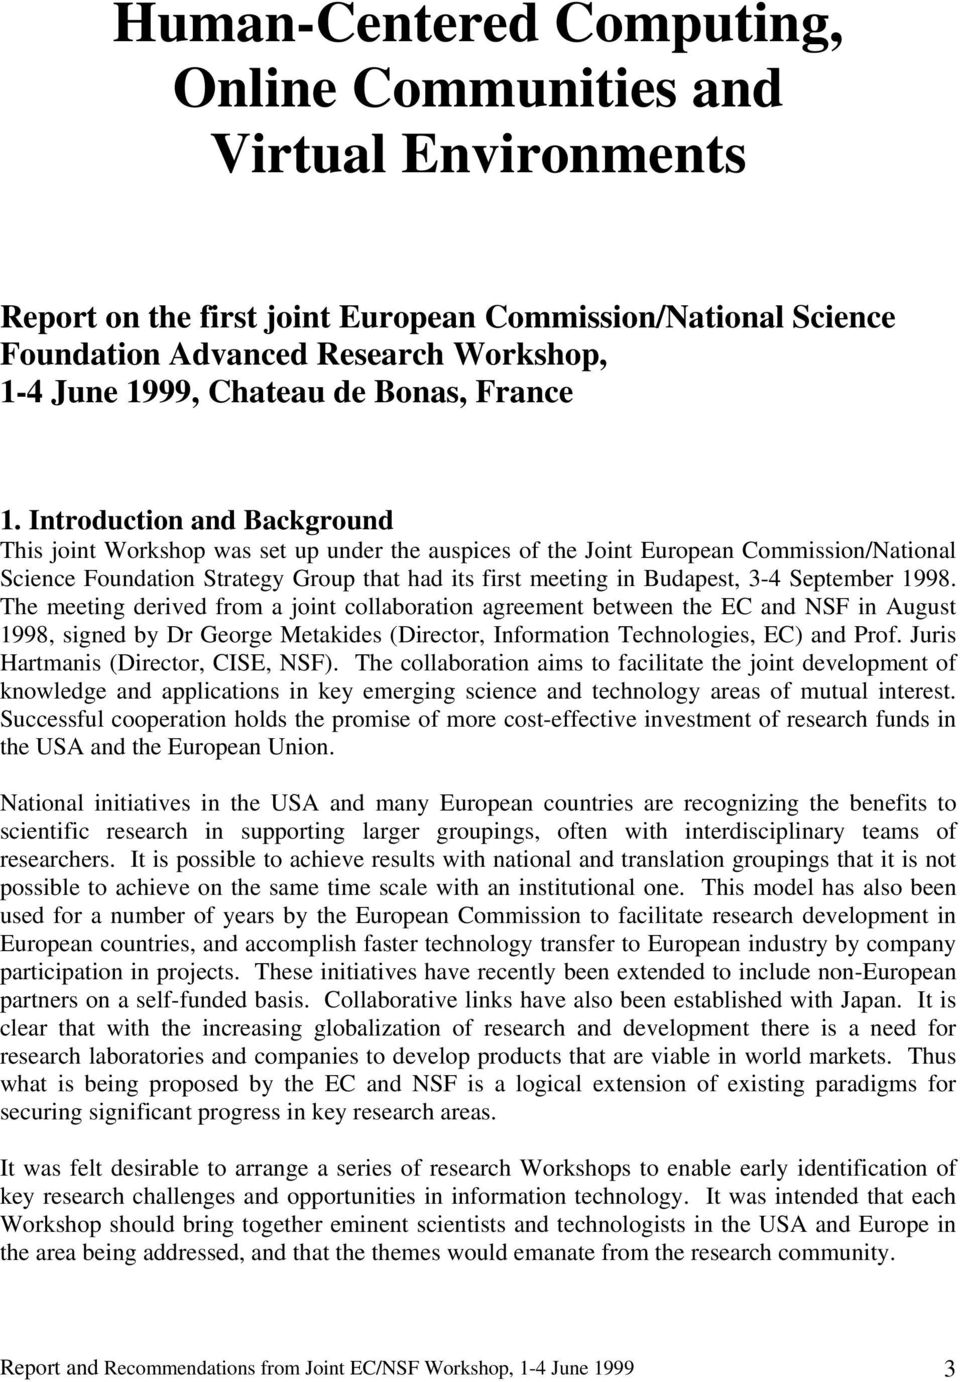 Introduction and Background This joint Workshop was set up under the auspices of the Joint European Commission/National Science Foundation Strategy Group that had its first meeting in Budapest, 3-4